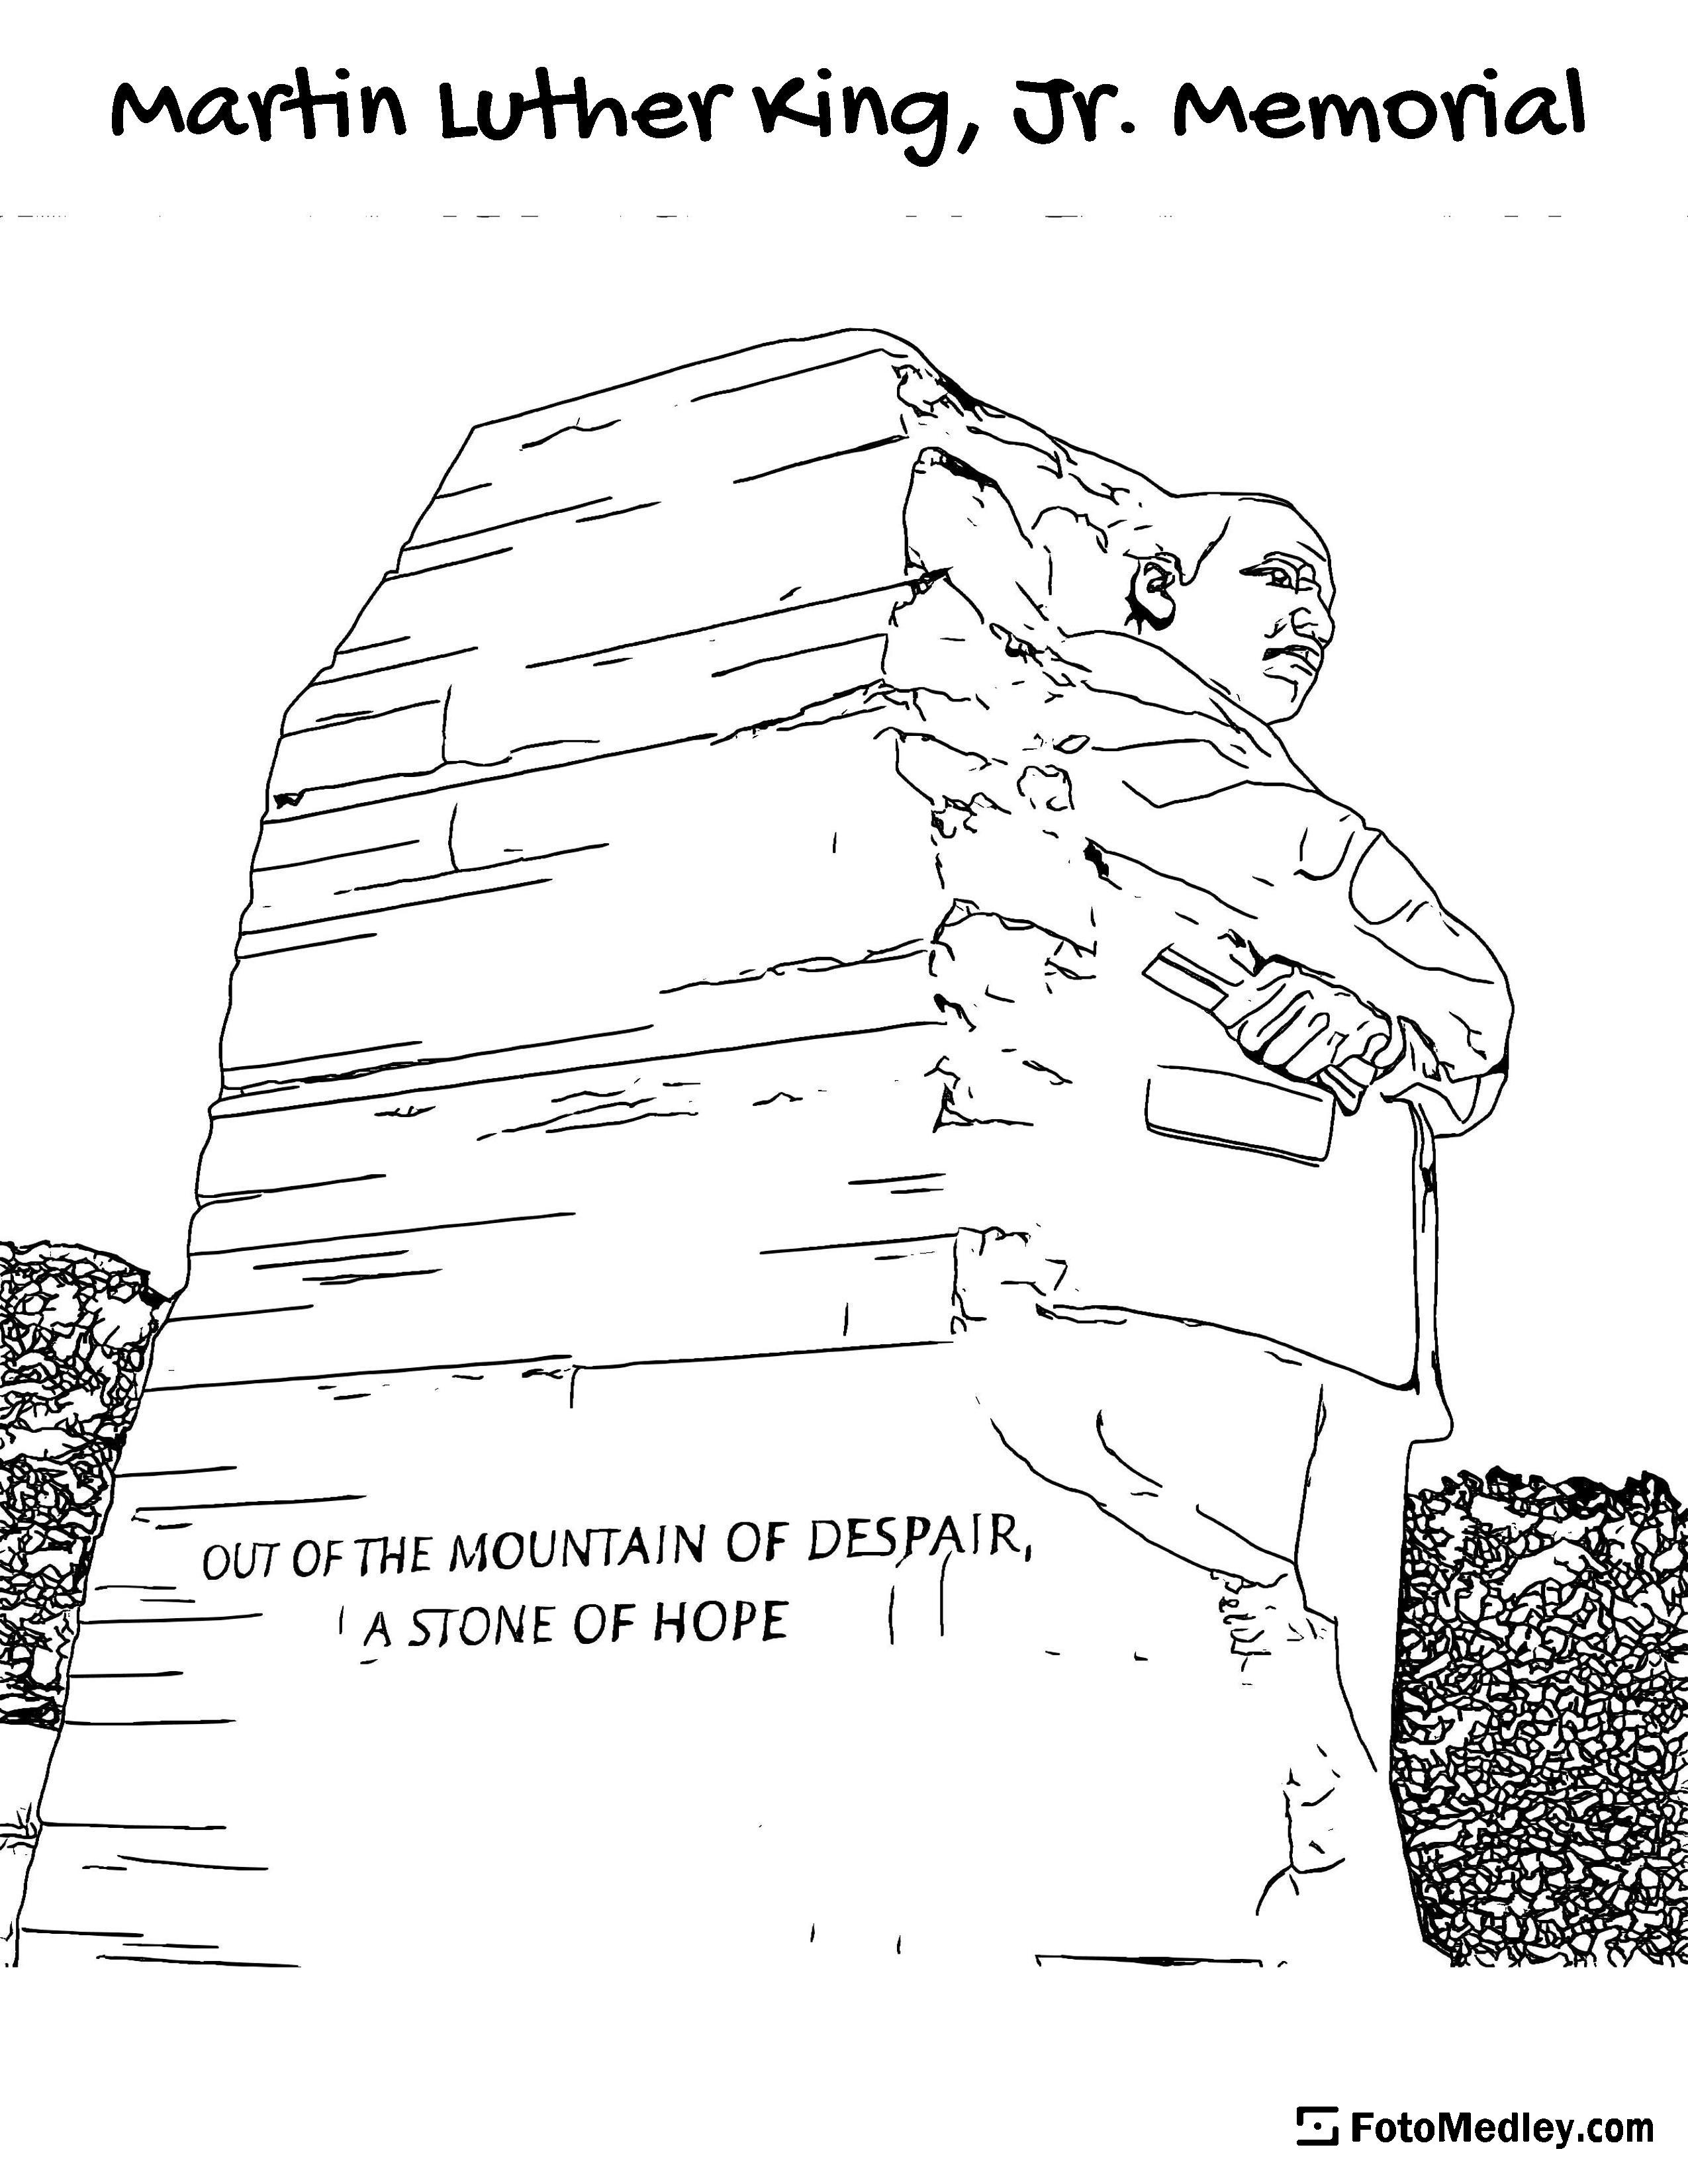 A coloring page of the Martin Luther King, Jr. Memorial in Washington D.C. Including the quote: 'OUT OF THE MOUNTAIN OF DESPAIR, A STONE OF HOPE'.